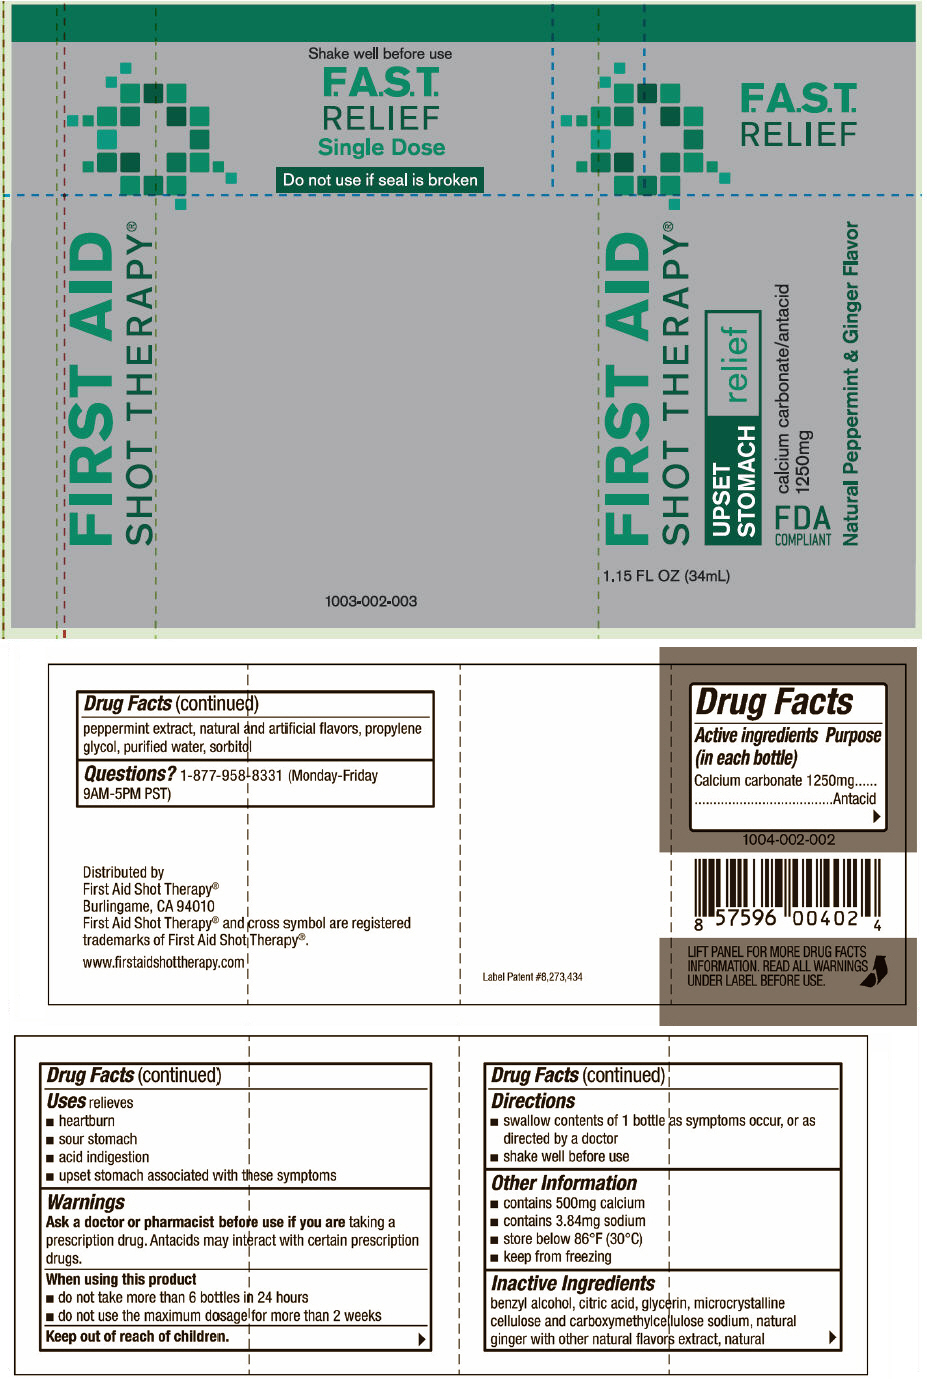 First Aid Shot Therapy Upset Stomach Relief (Calcium Carbonate) Solution [First Aid Beverages, Inc.]